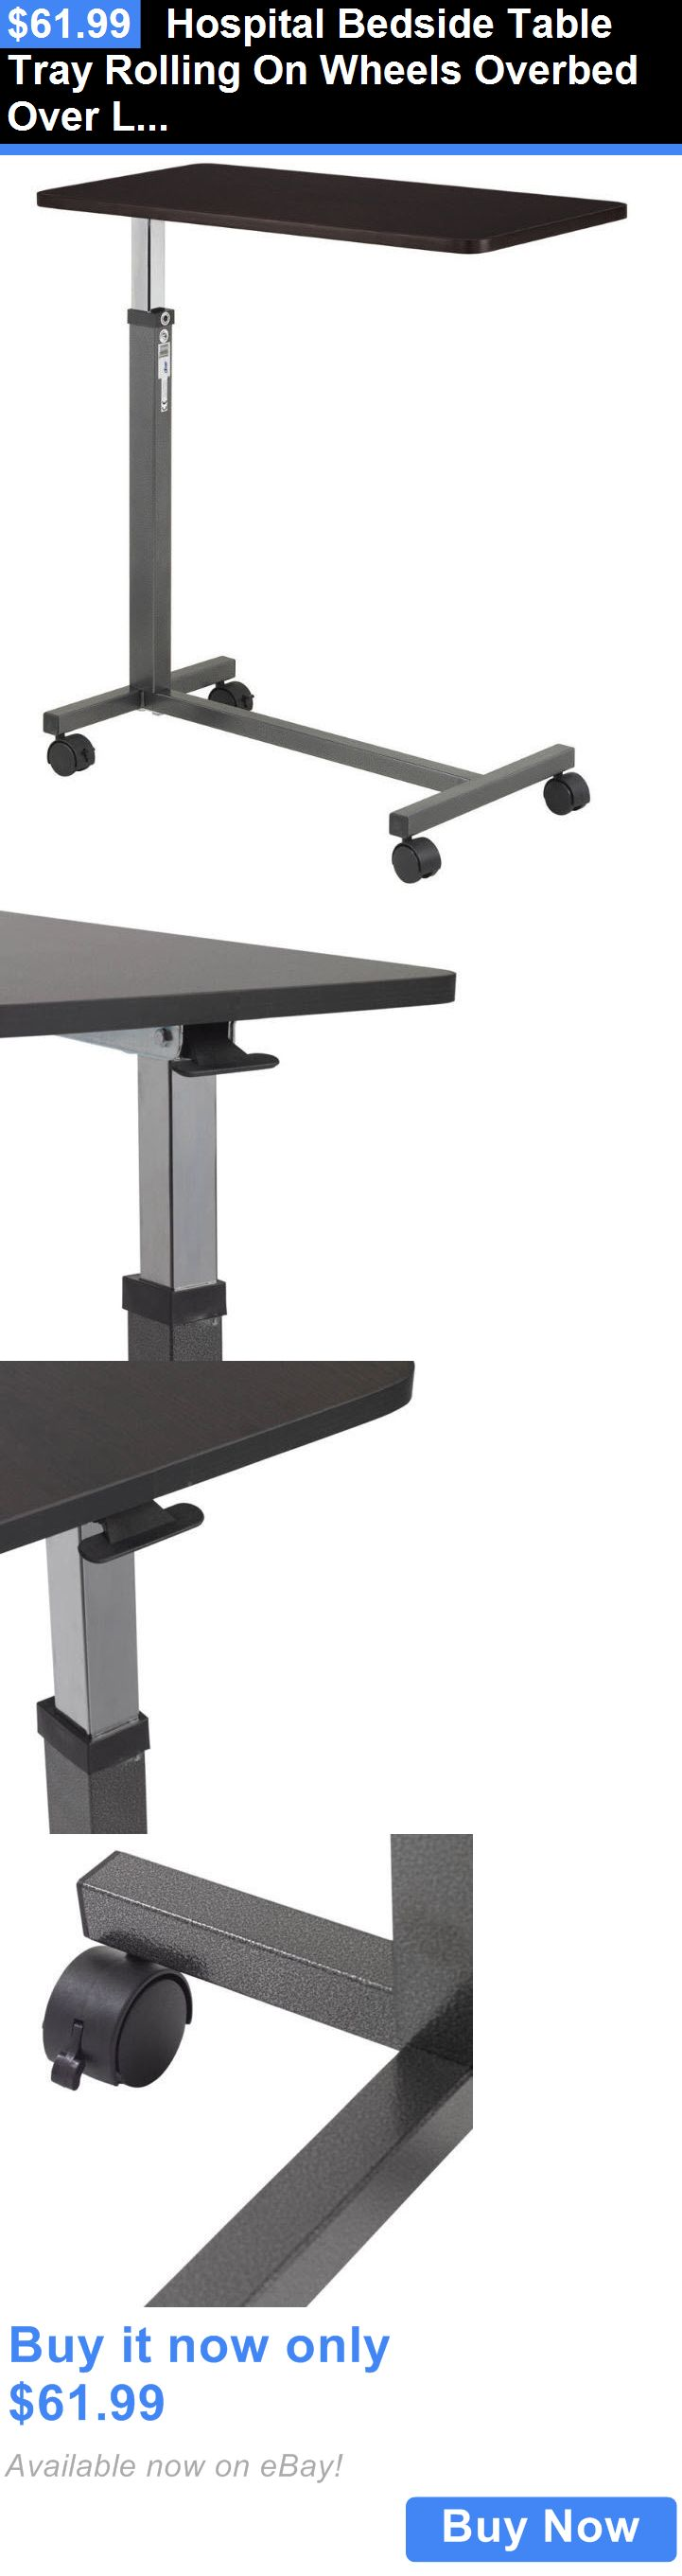 Other Mobility and Disability: Hospital Bedside Table Tray Rolling On Wheels Overbed Over Laptop Adjustable BUY IT NOW ONLY: $61.99